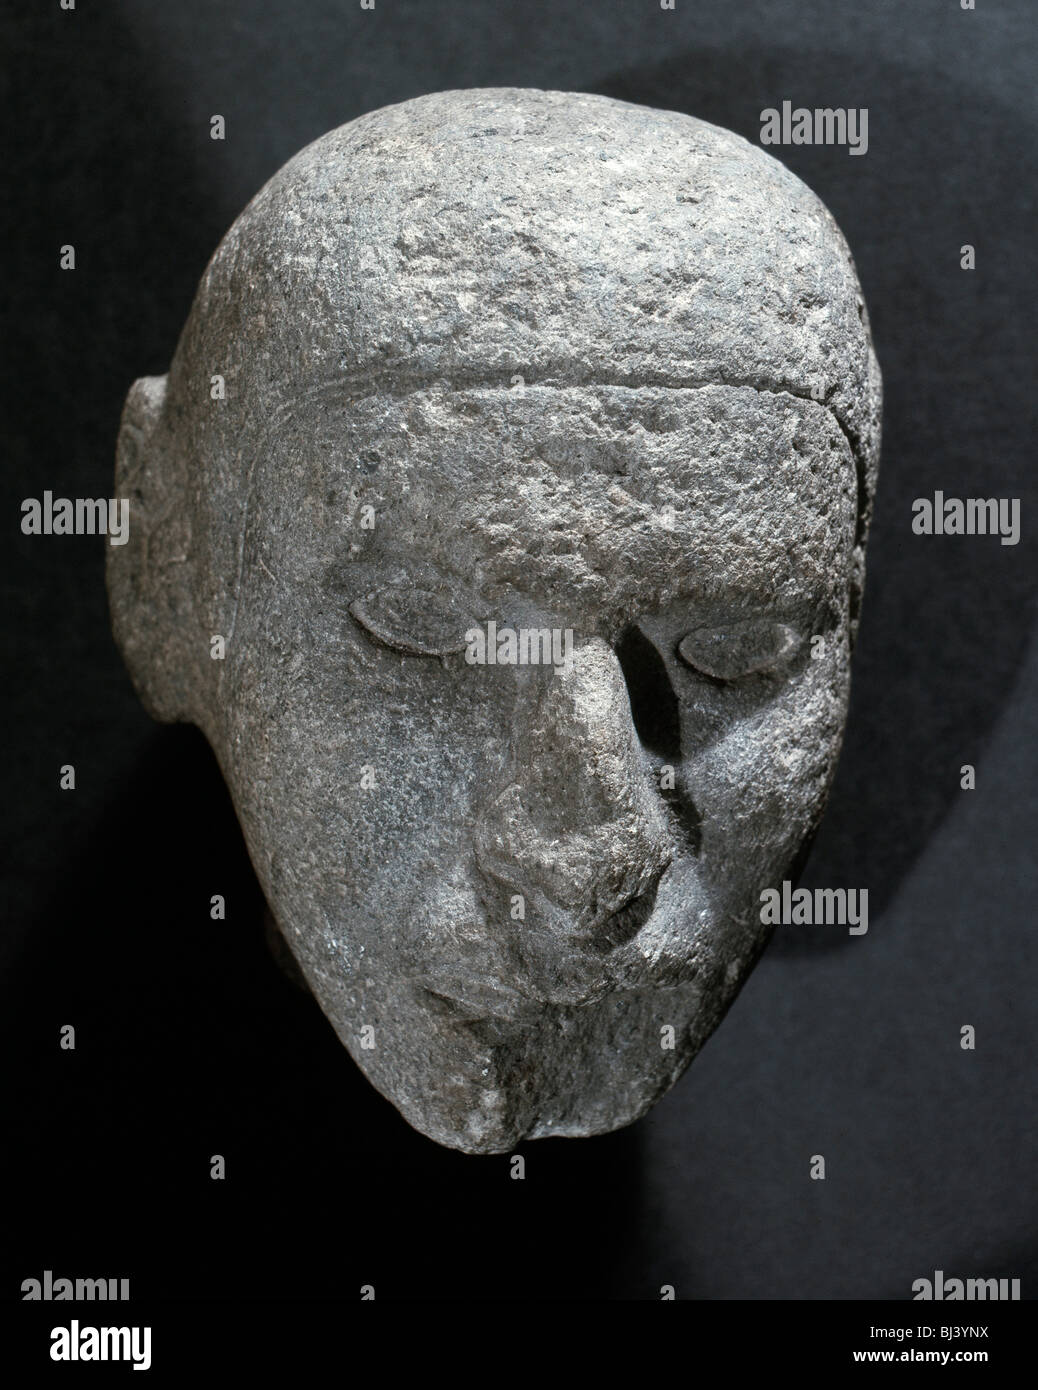 Aztec stone male head, Mexico, 1350-1521. Artist: Werner Forman - Stock Image